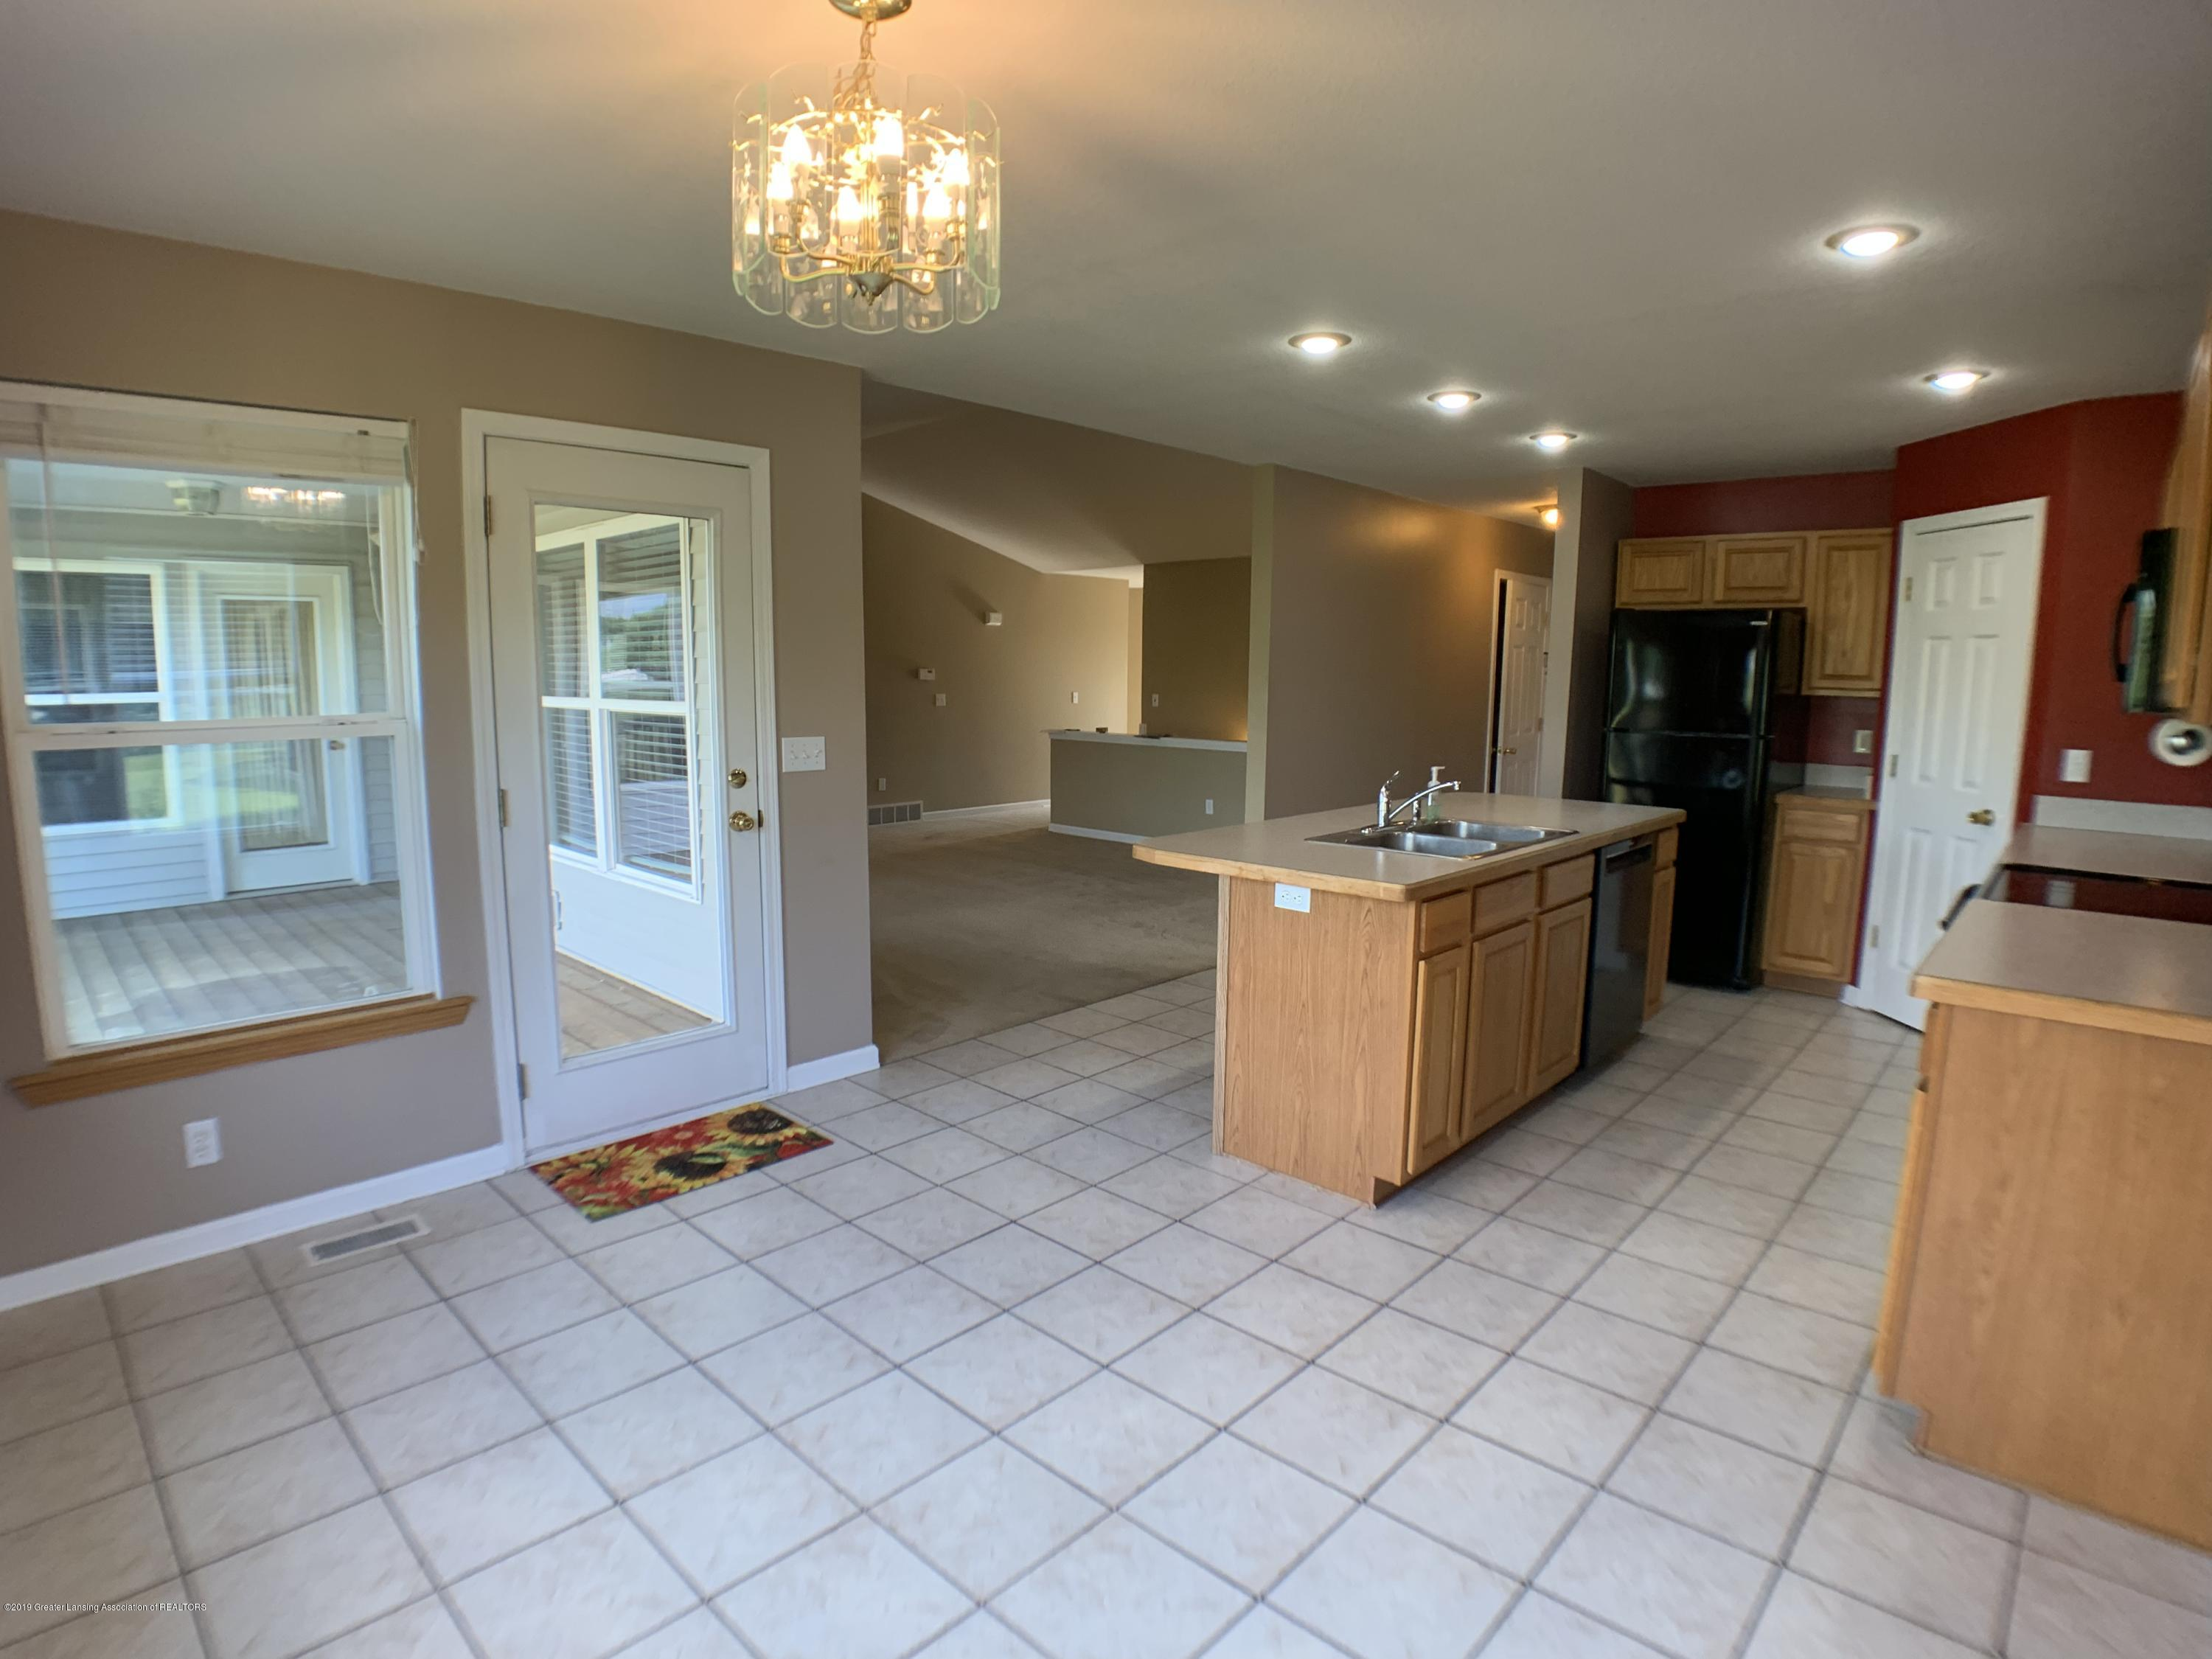 1556 Groombridge Dr - Kitchen - 18